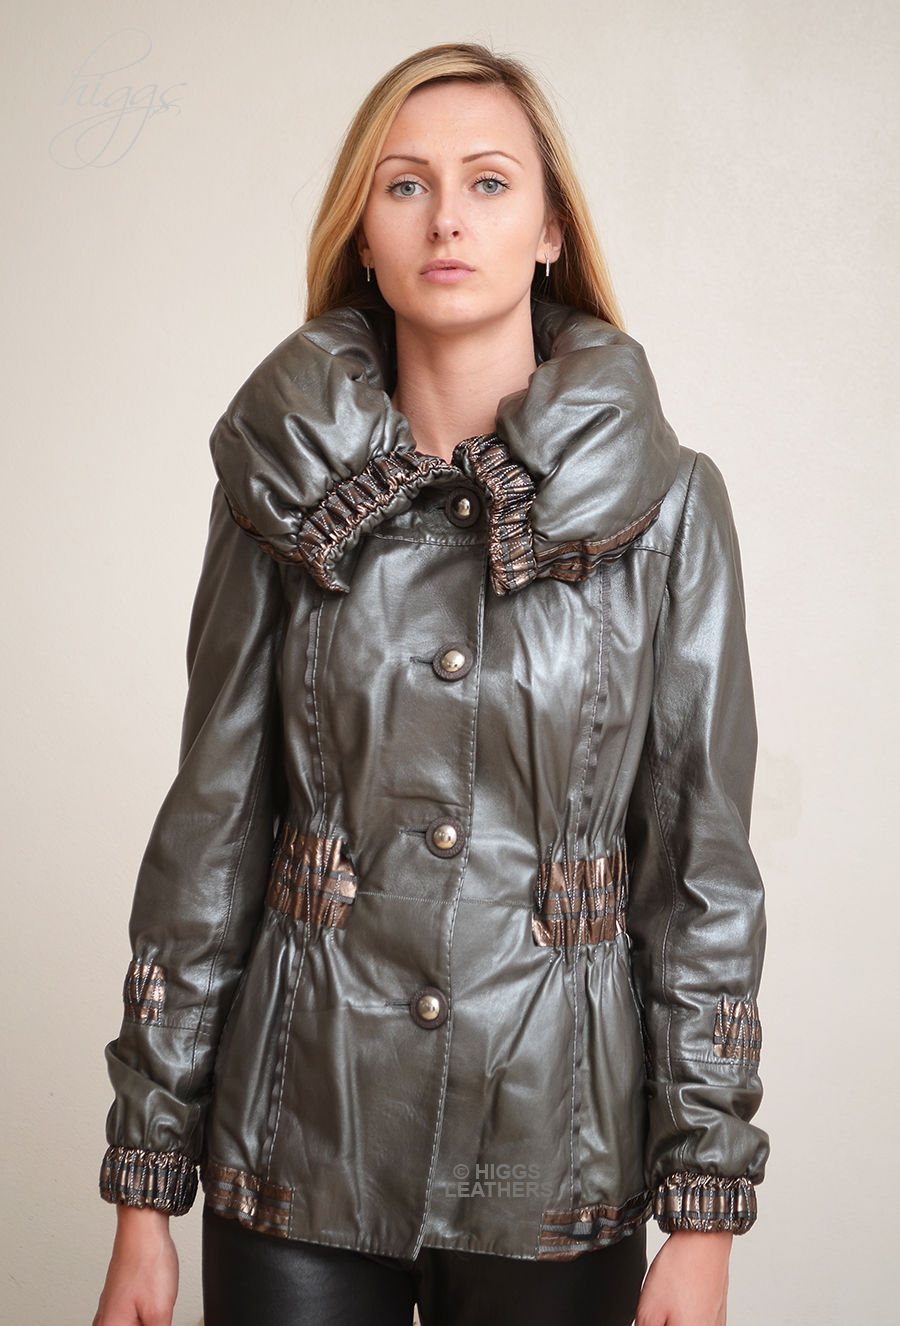 Higgs Leathers {SOLD!}  Delicio (ladies softest Designer Leather jackets) Very Special Designer Leather jackets!